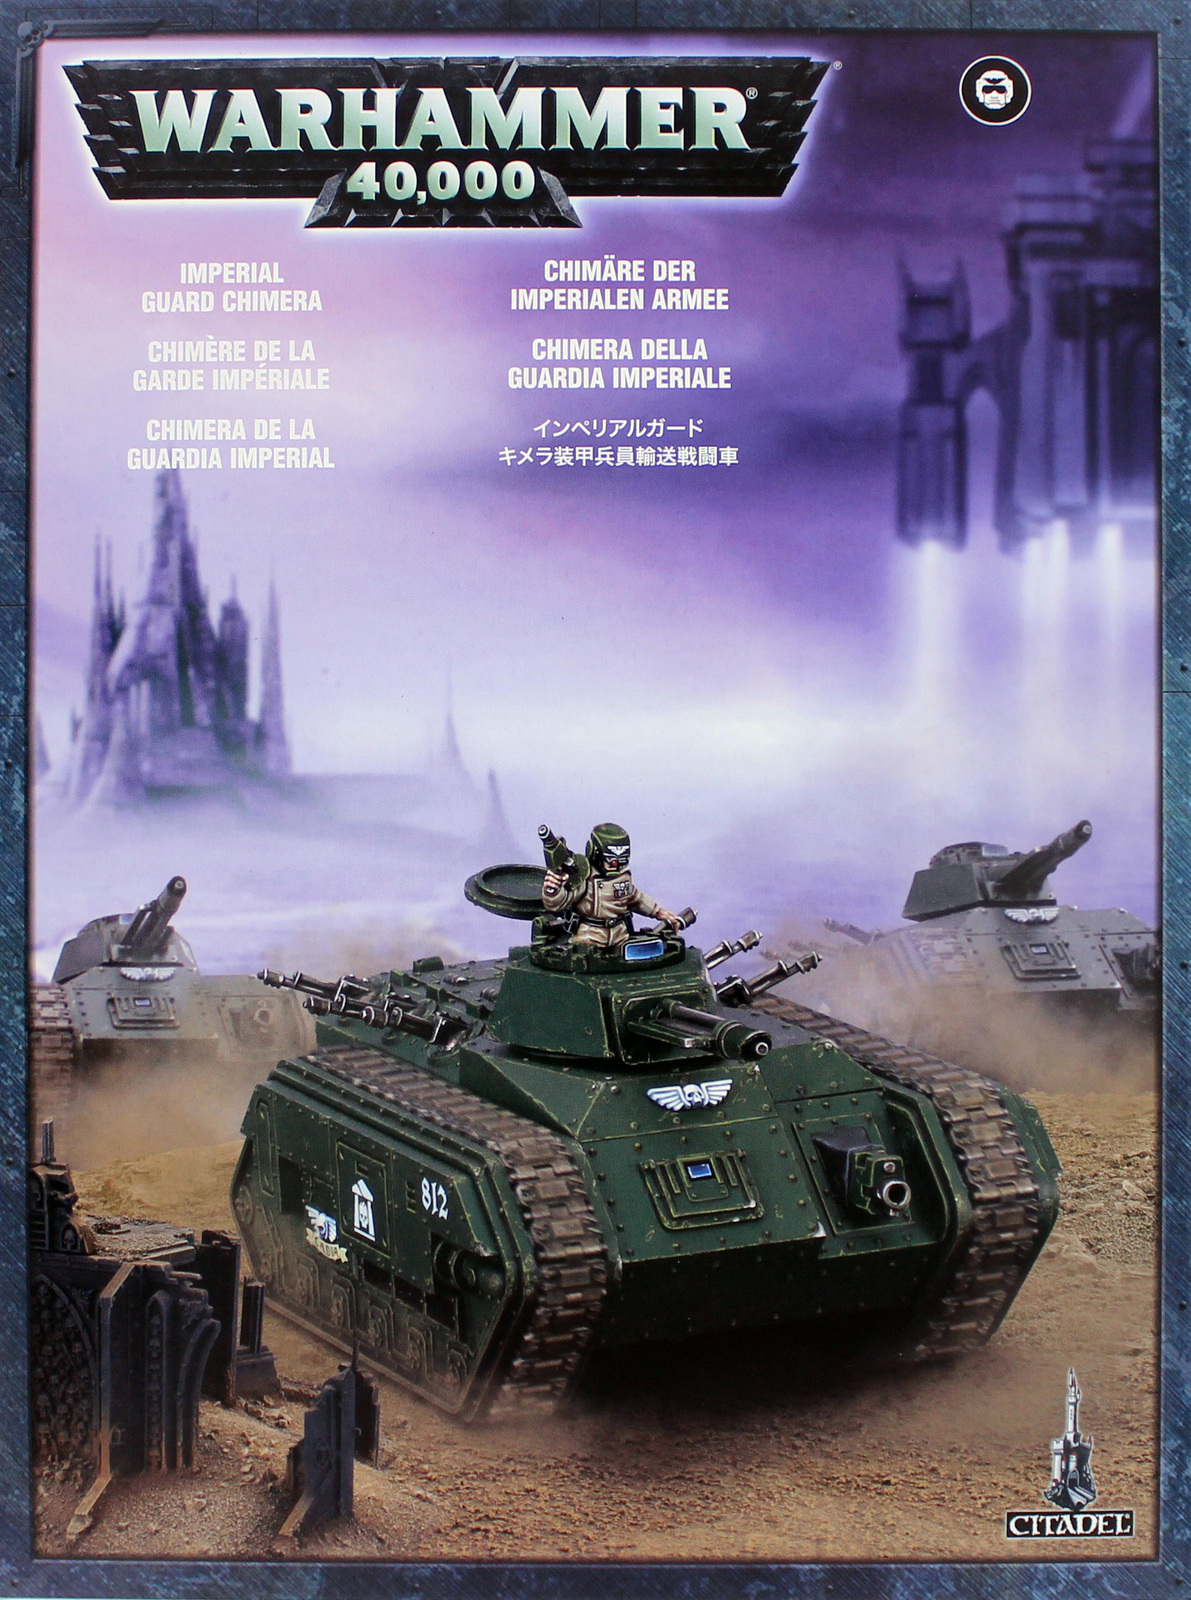 Warhammer 40,000 Imperial Guard Chimera image